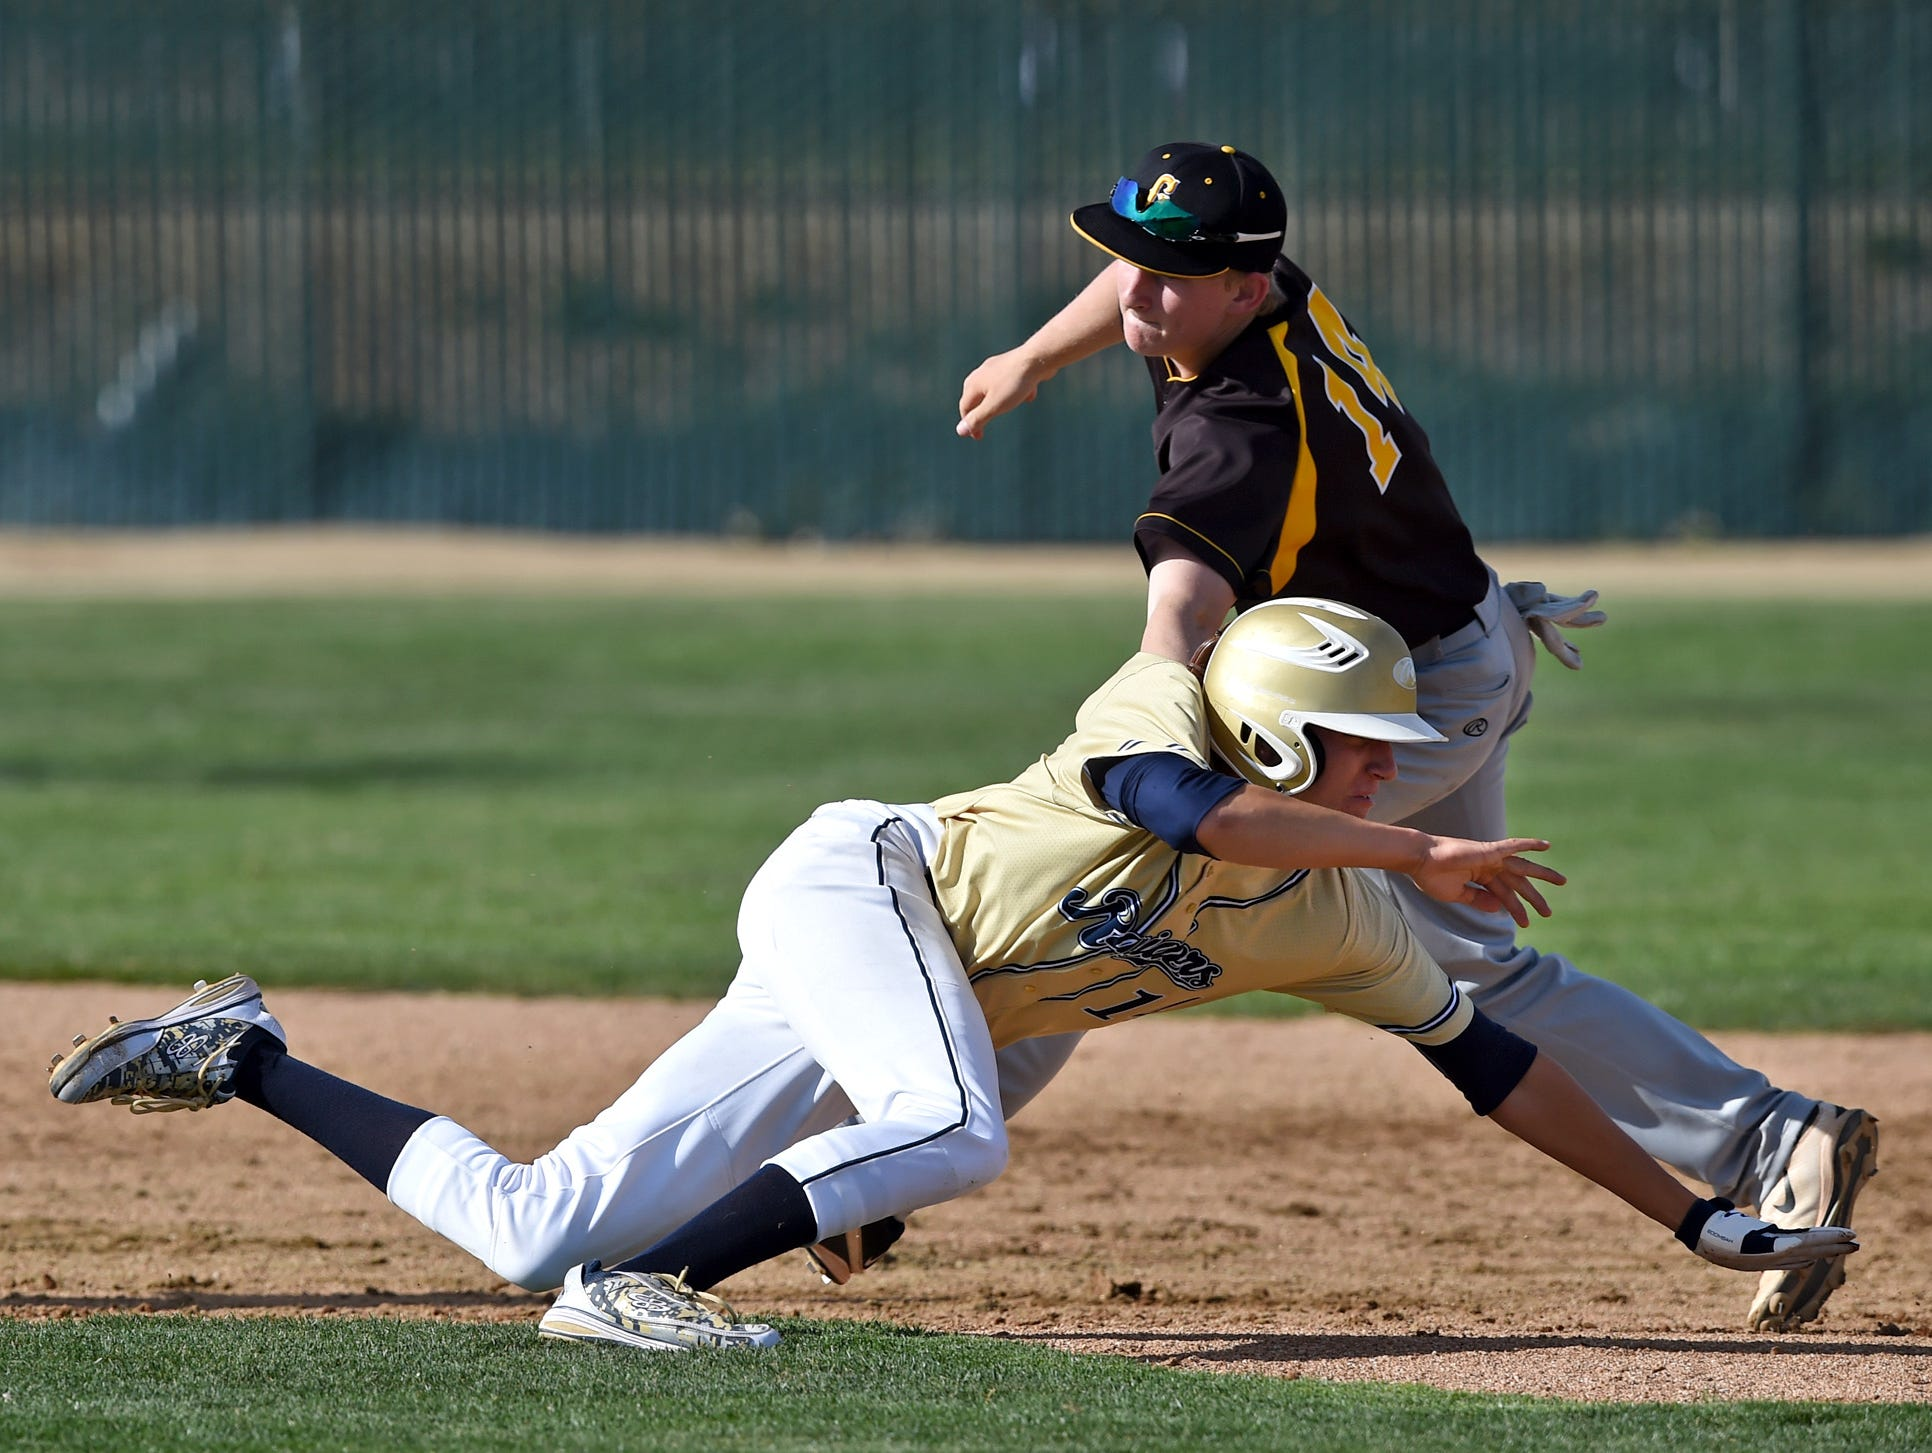 Galena's Andrew West reaches to tag Reed's Levi Sanchez who was caught in a rundown between second and third base during Tuesdays game at Reed.